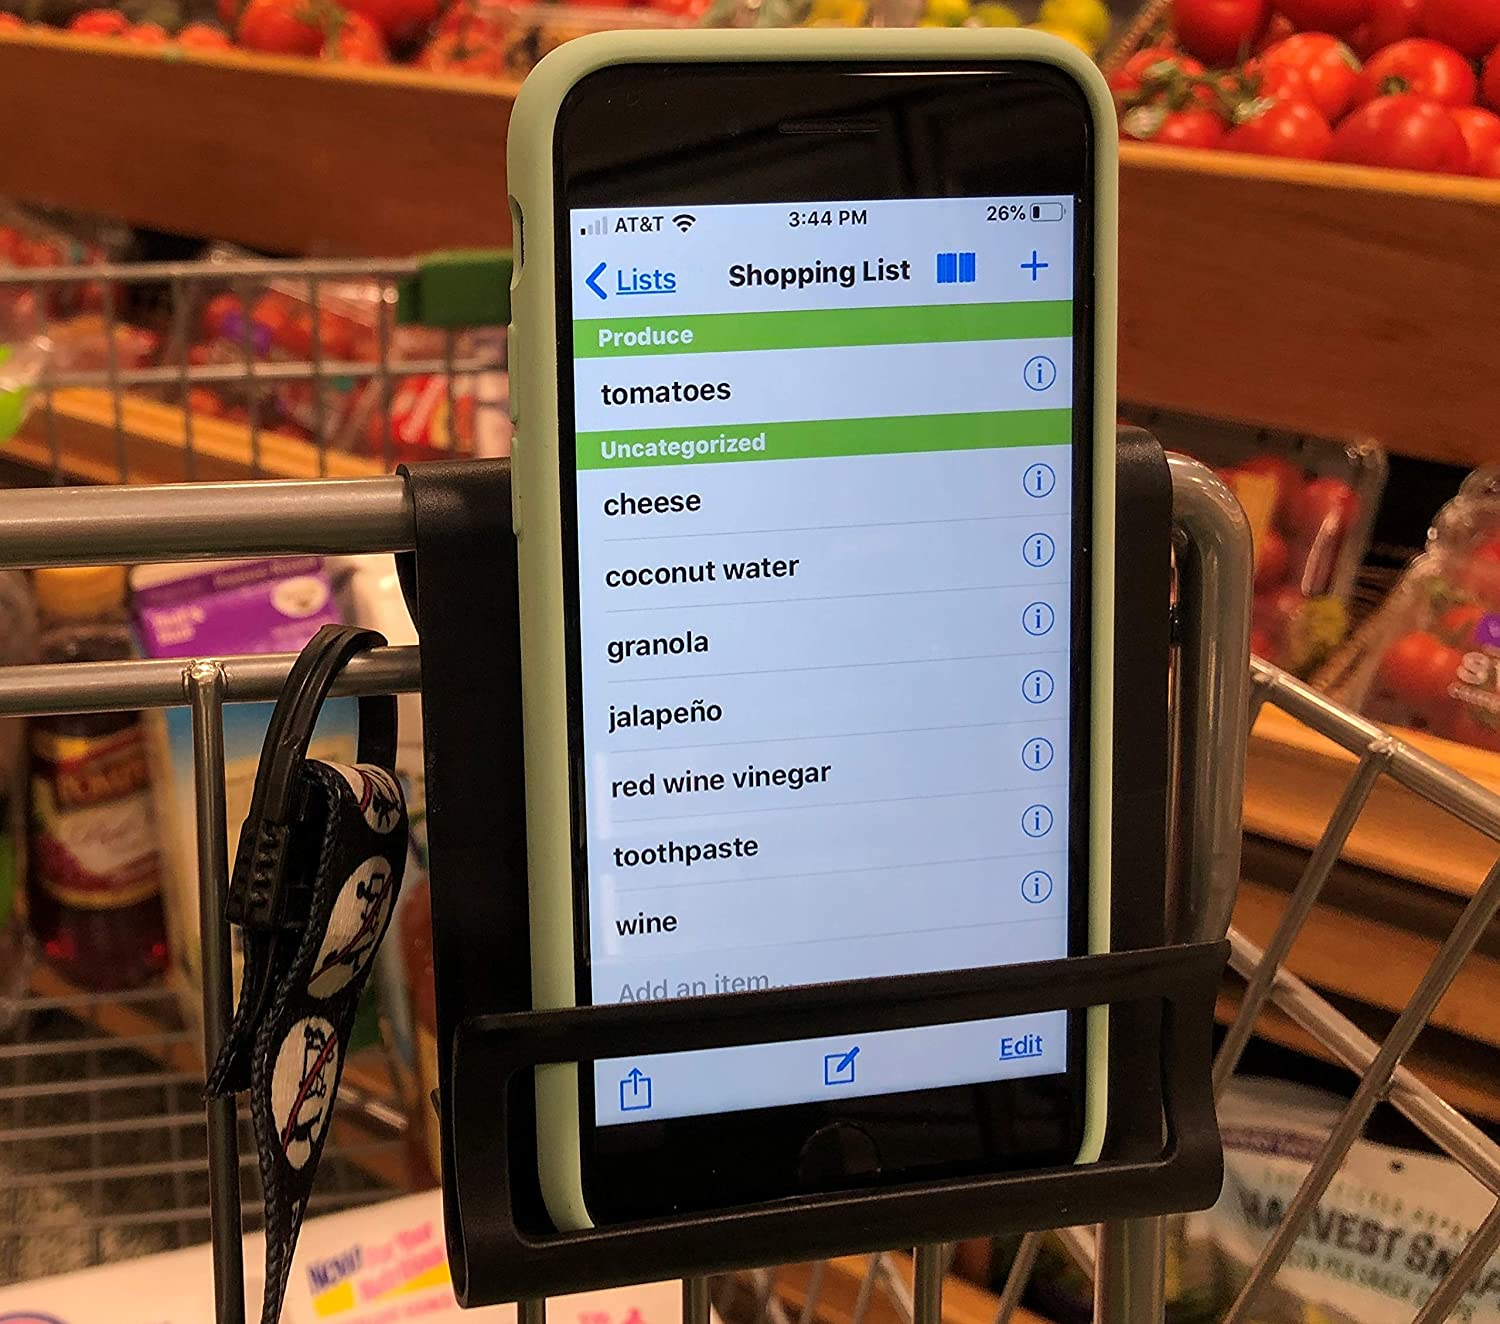 Cart Phone Caddy - Smartphone Holder for Shopping Cart - Safely Secures Cell Phone While you Shop